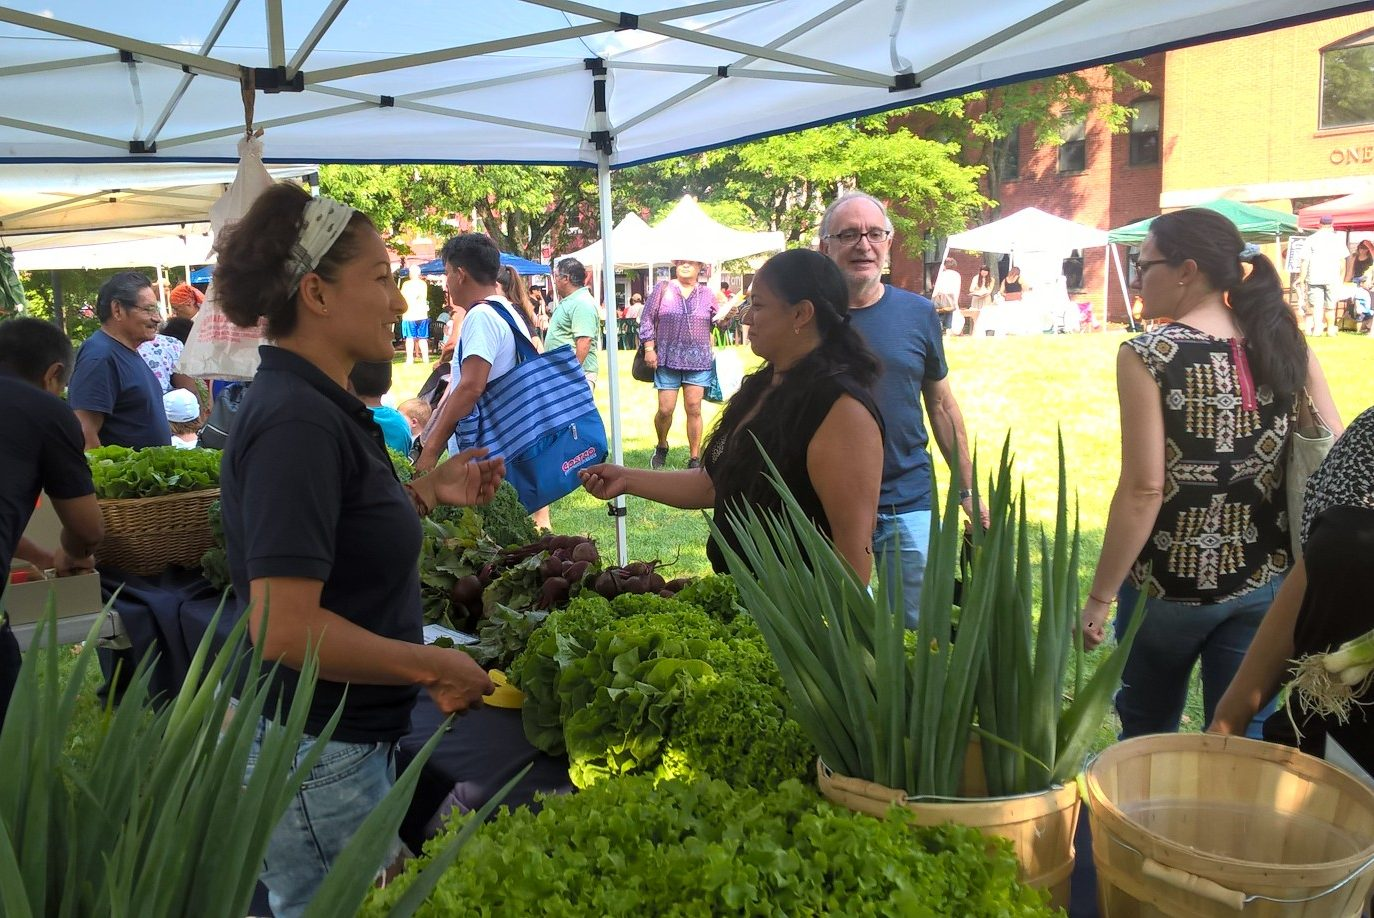 Partha Loor of UConn Extension's urban agriculture program, sells produce at the Danbury Farmers' Market. (Sara Putnam/UConn Photo)